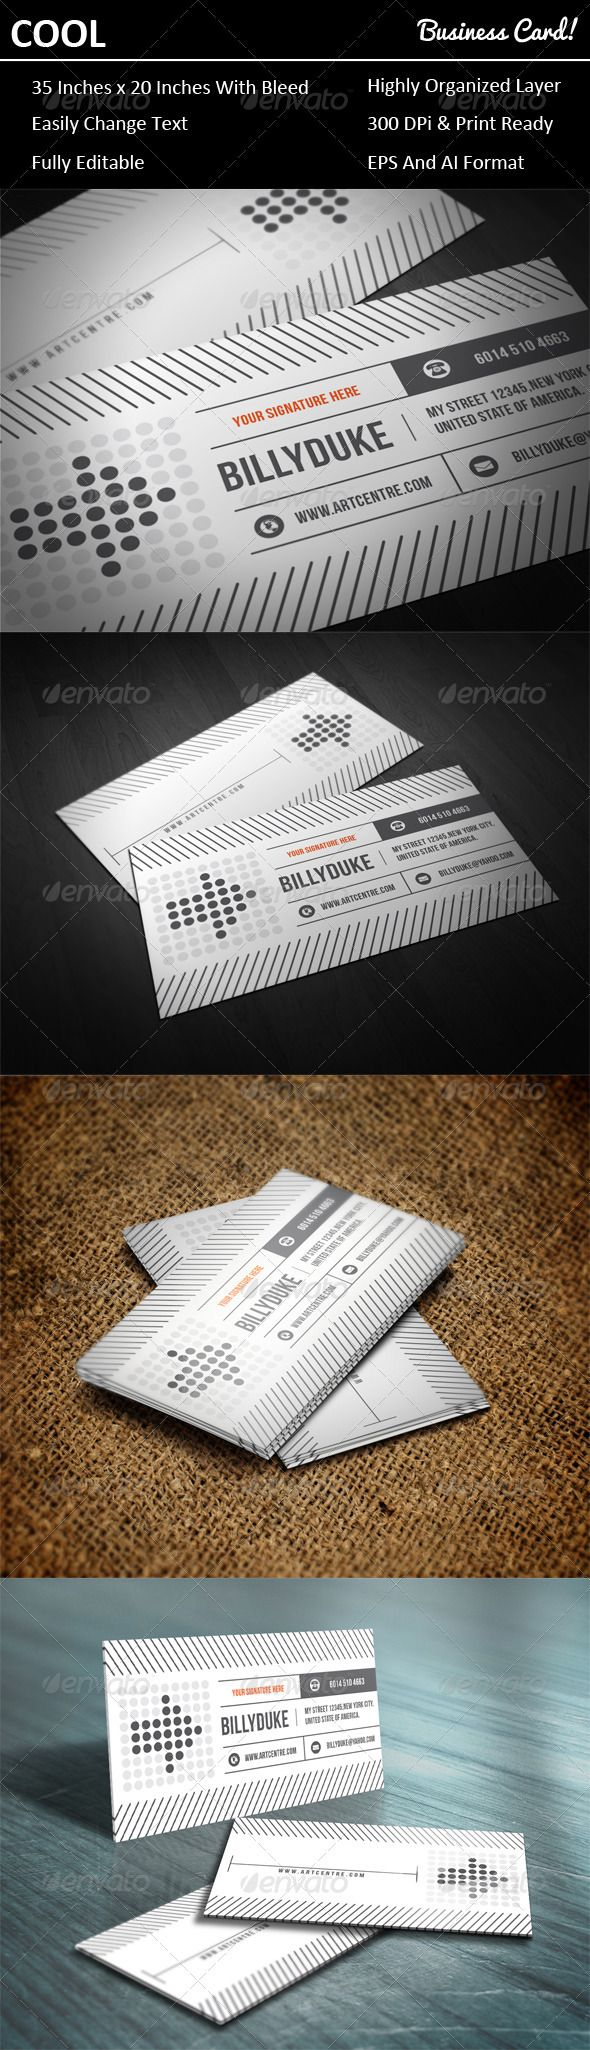 648 best cool business cards images on pinterest fonts arrows cool business card magicingreecefo Choice Image